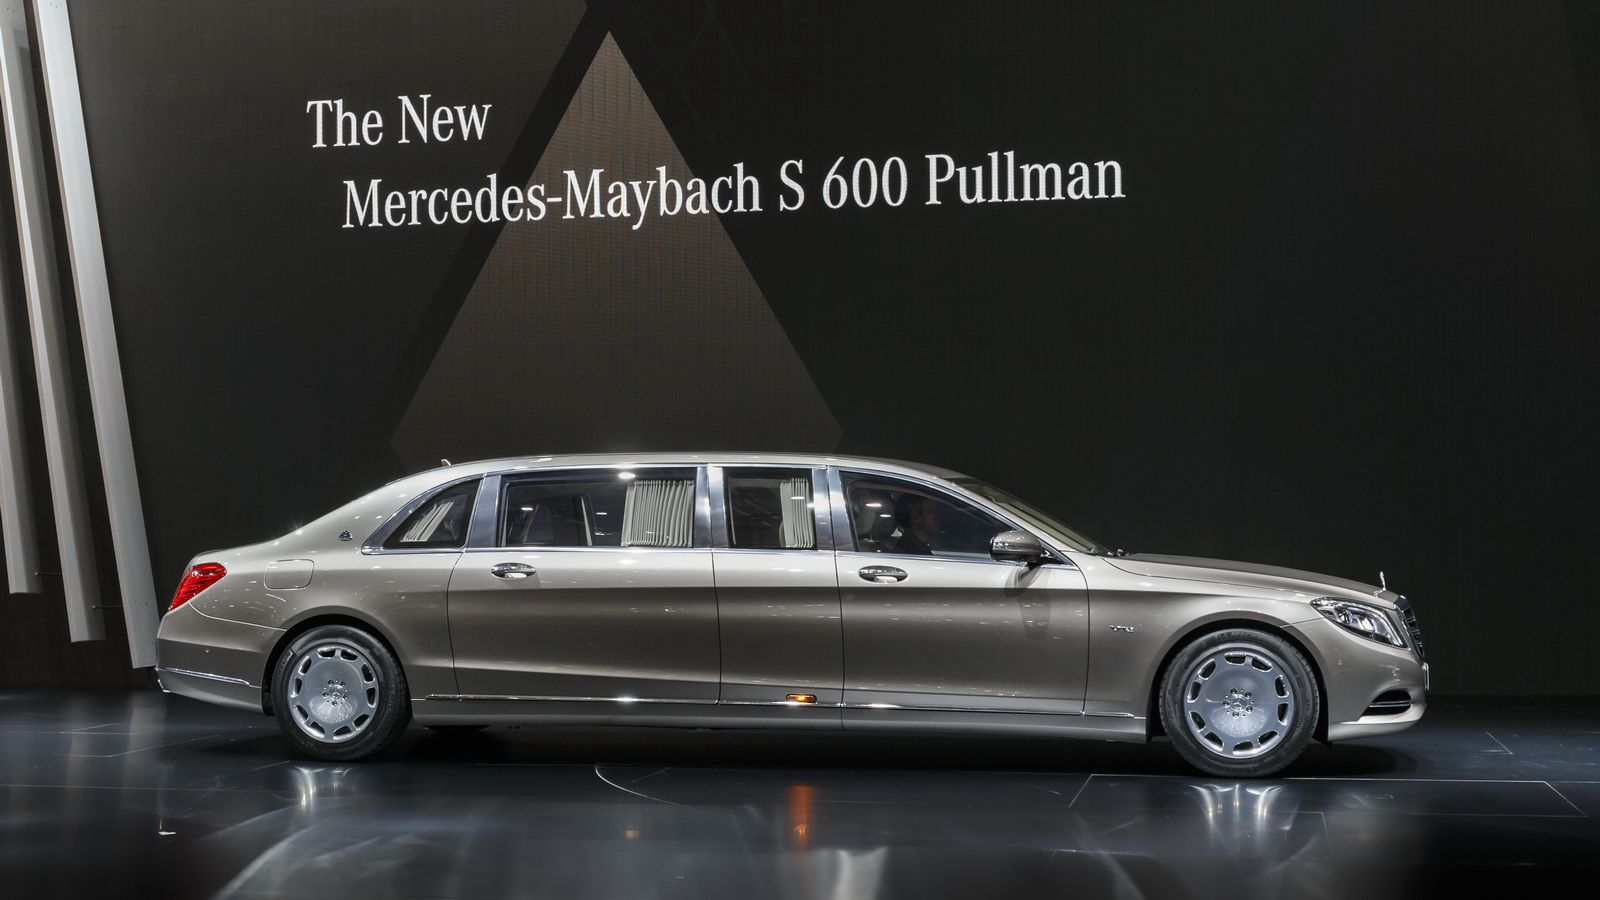 Mercedes Maybach S600 Pullman Is The Epitome Of Three Pointed Star